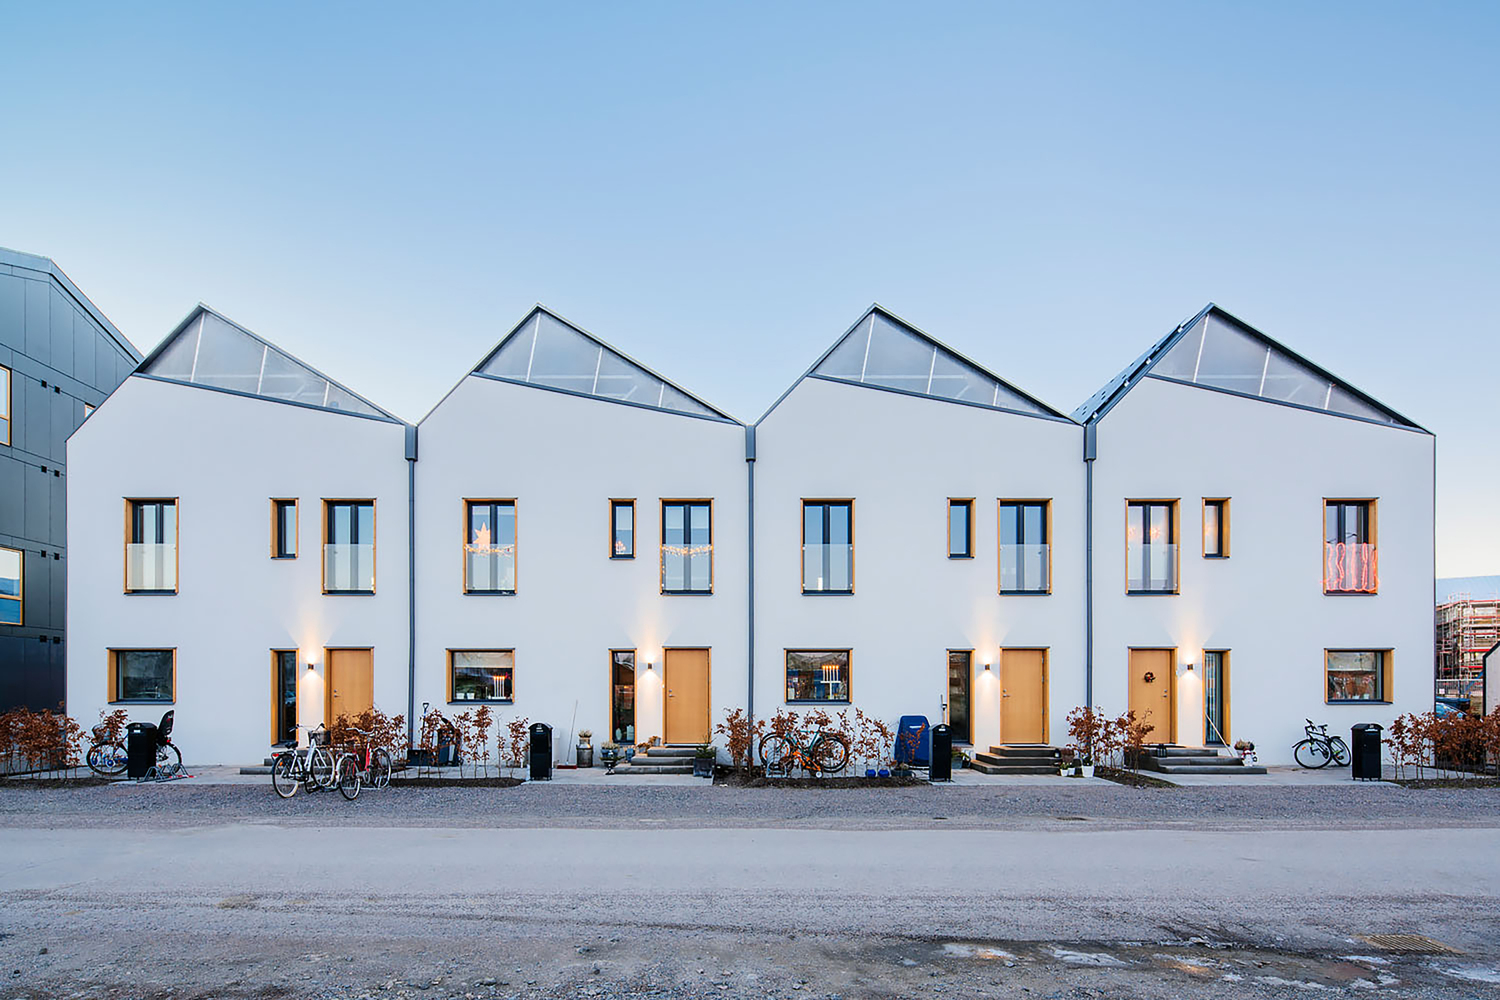 Modern prefab row houses embrace solar power